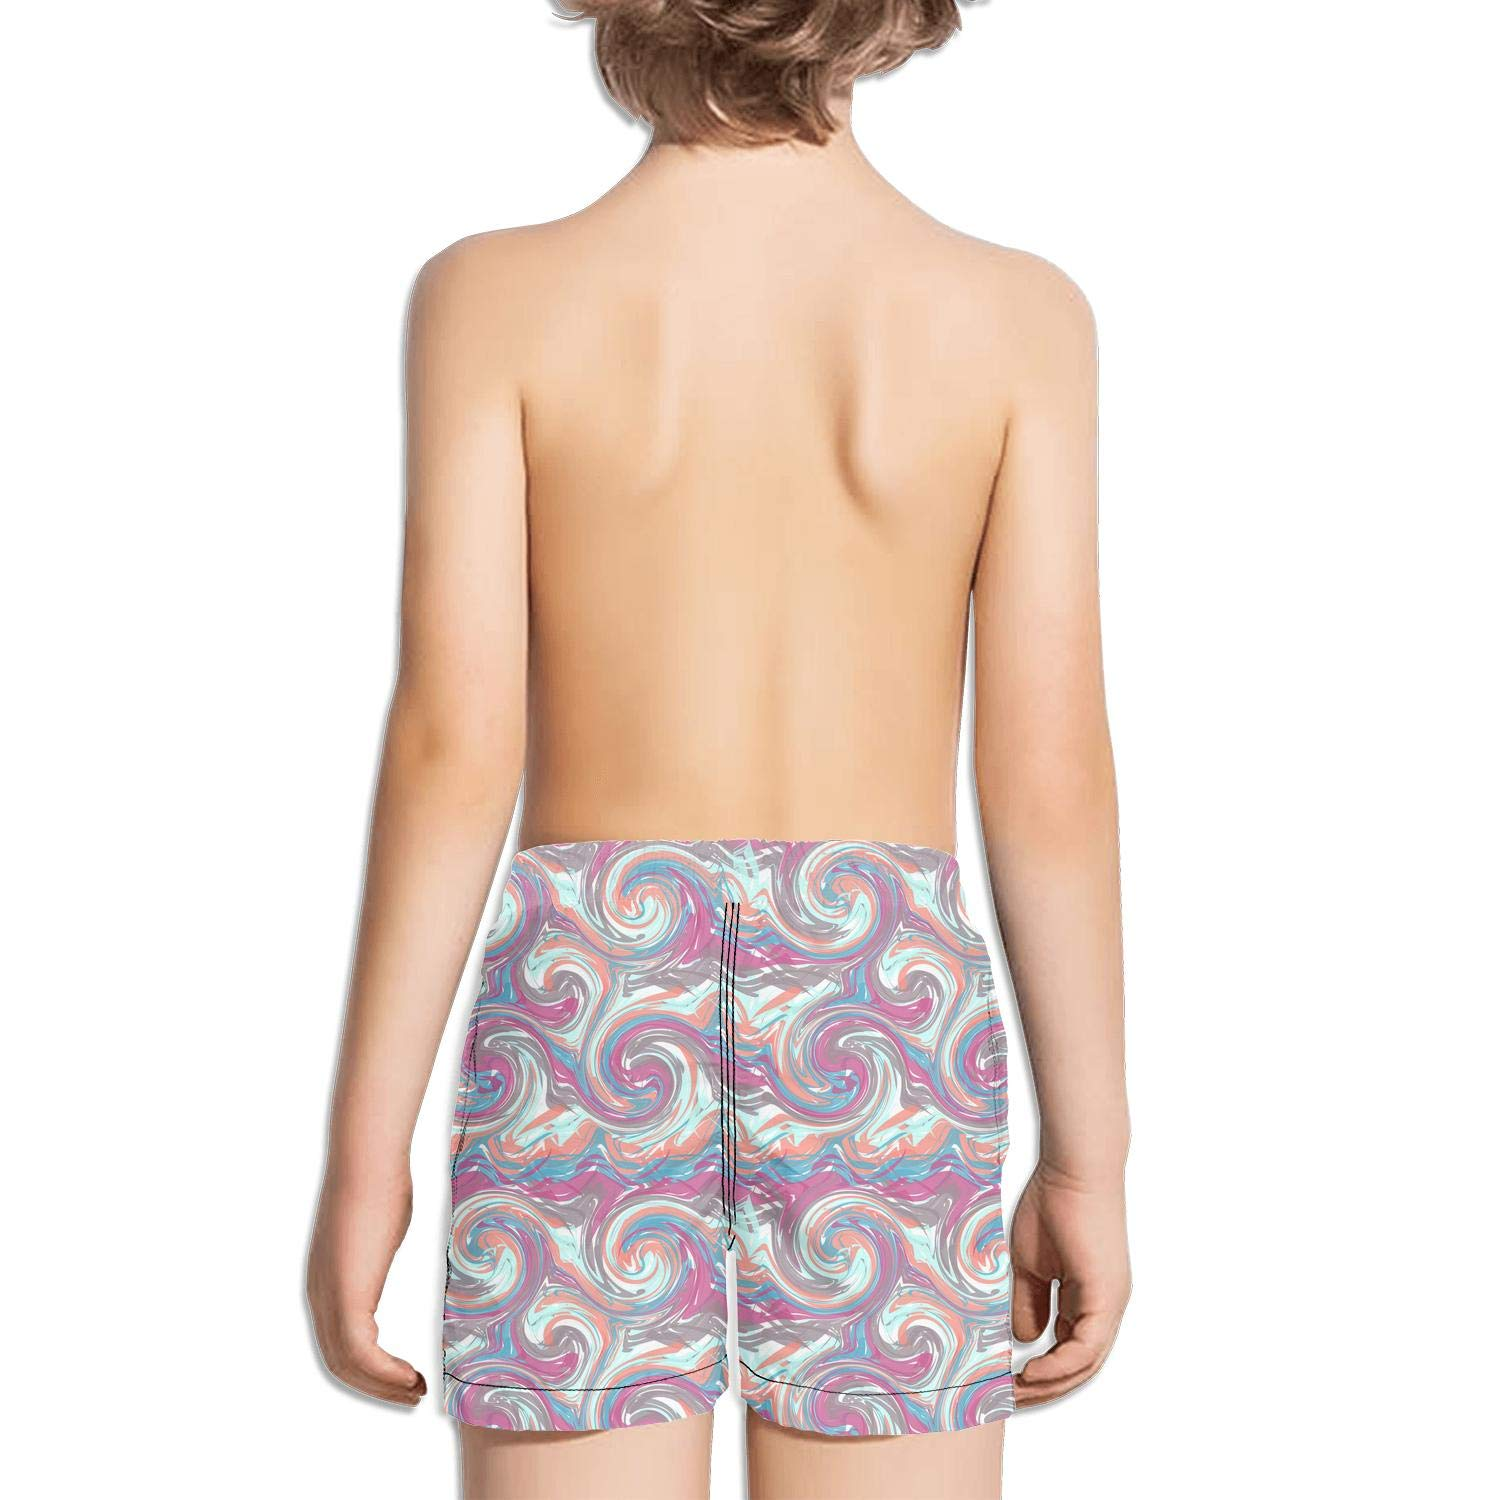 BingGuiC Boys Quick Dry Shorts Abstract Paint Strokes Geometric Colorful Fashion Swim Trunks